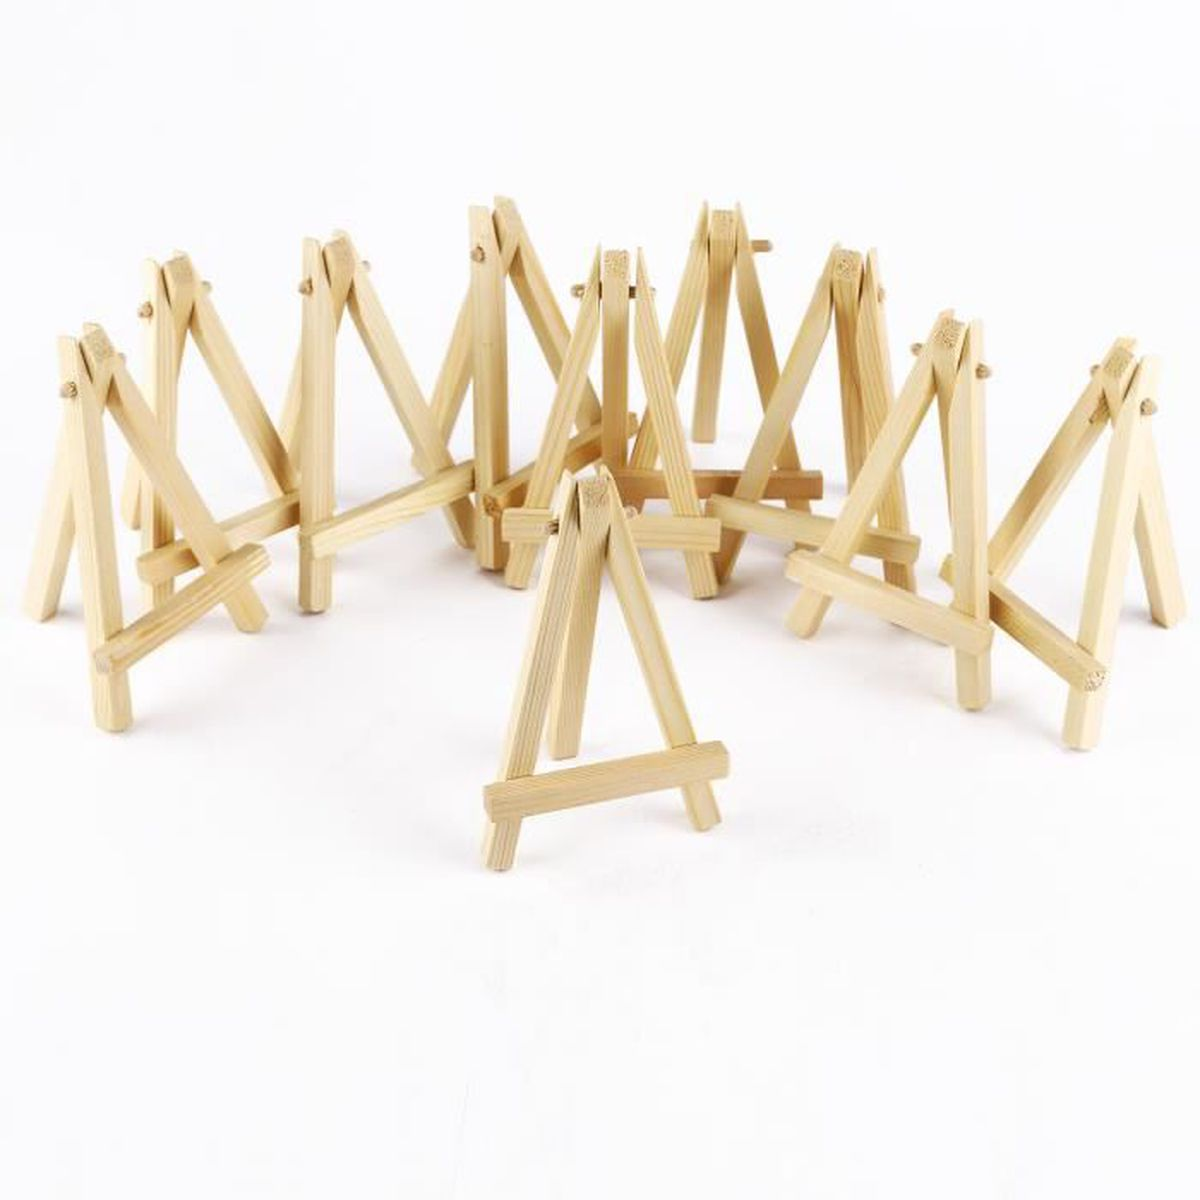 10pcs mini chevalet tr pied en bois 12 x 7cm support photo carte mariage f te table achat Mini chevalet de table